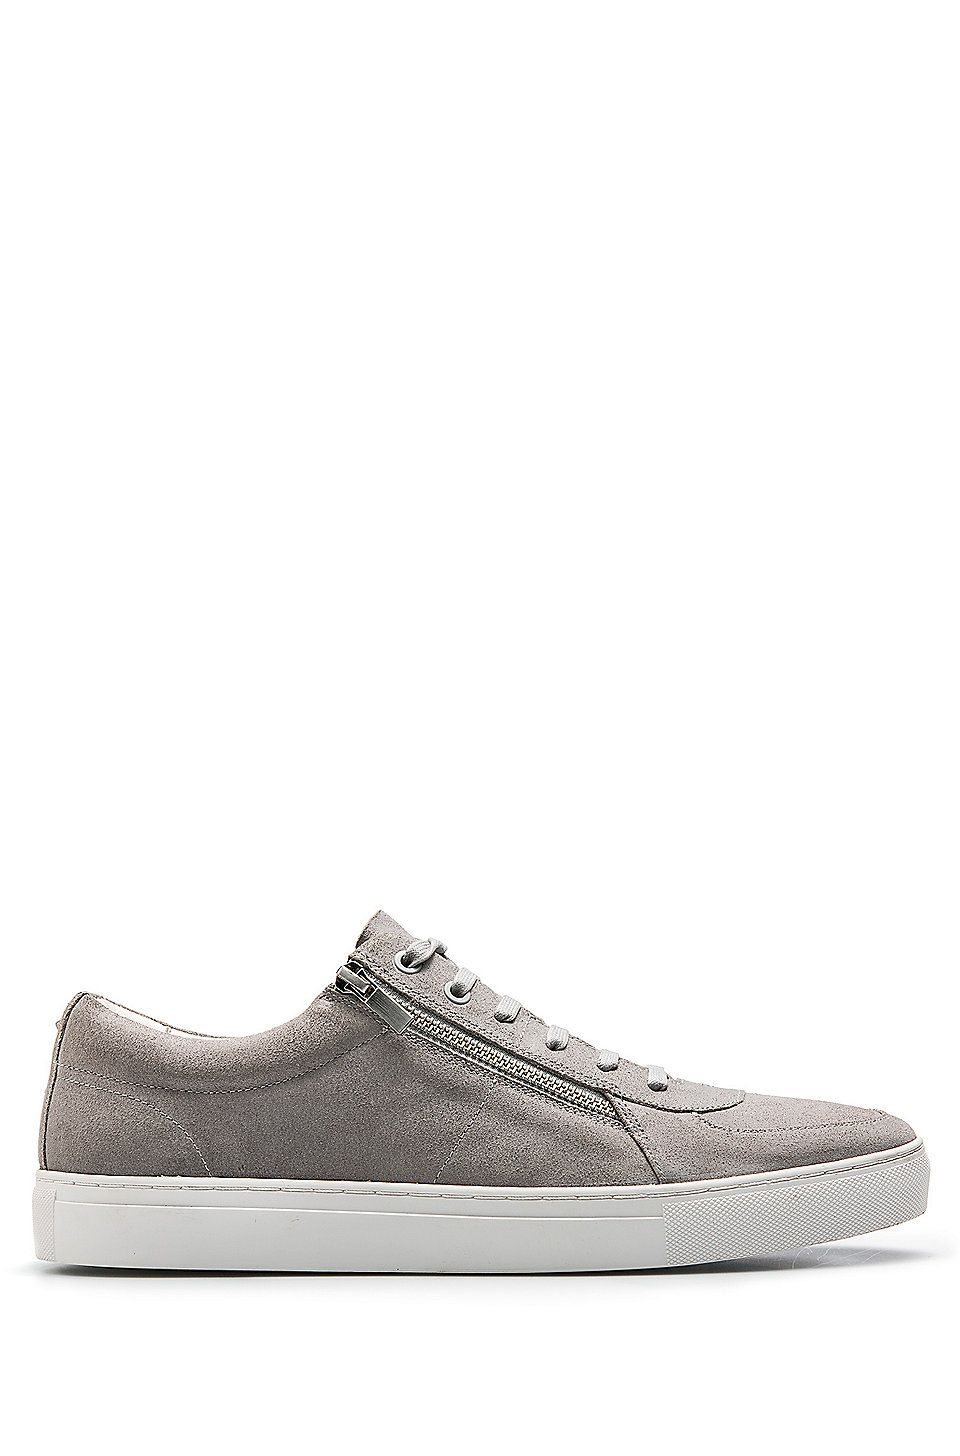 HUGO BOSS Waxed-suede trainers with